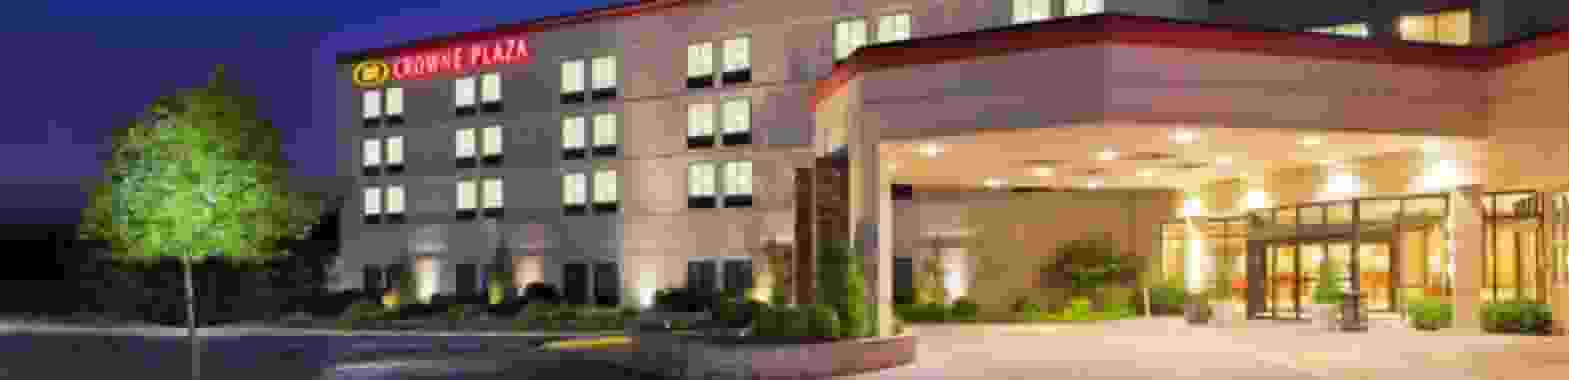 Crowne Plaza Dulles Airport Hotel - Herndon, Virginia